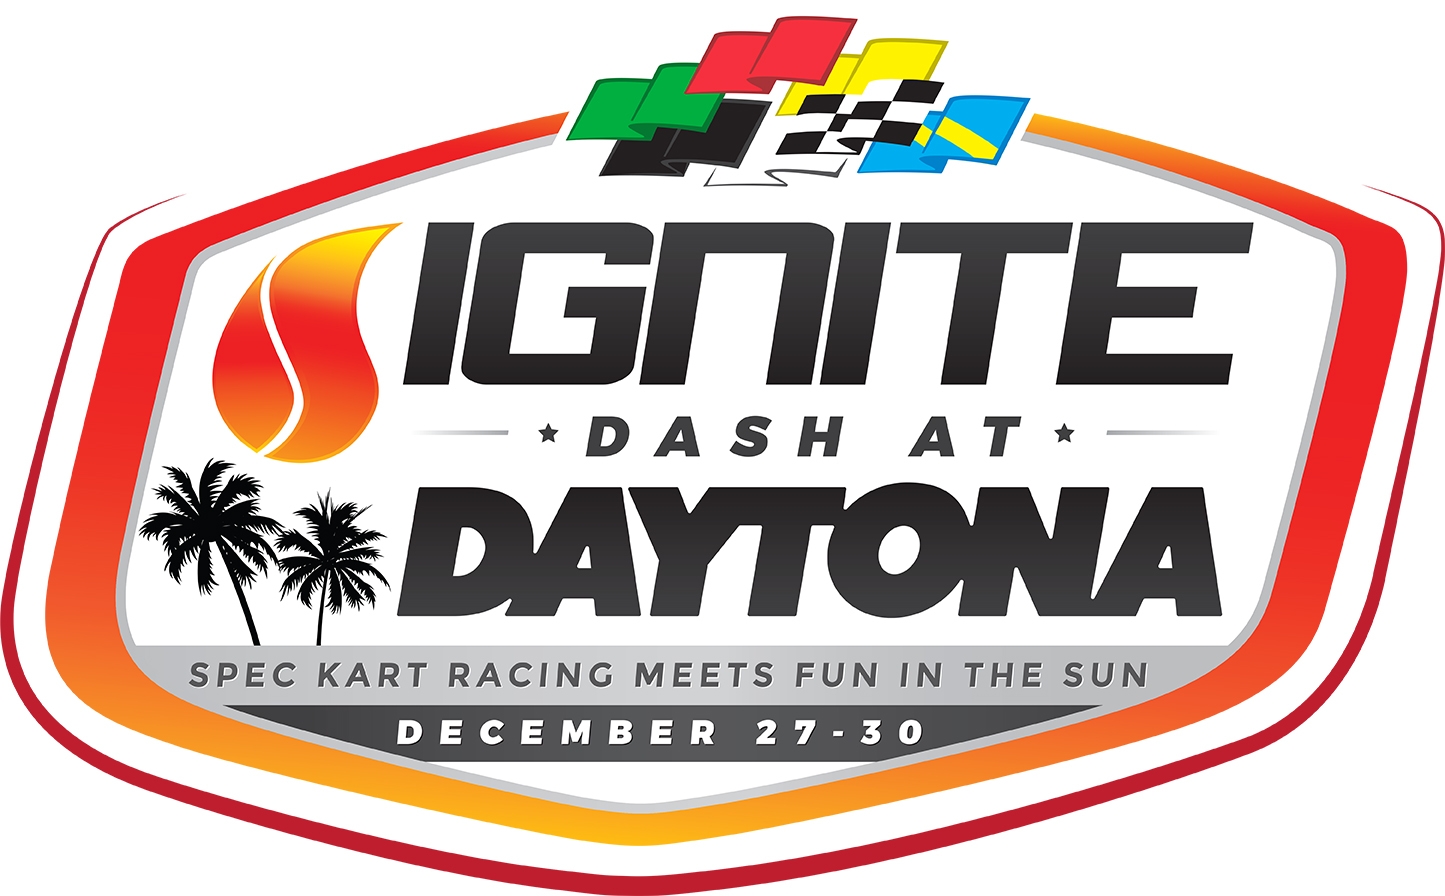 WKA Kartweek's 2017 Ignite Dash at Daytona (December 27-30)